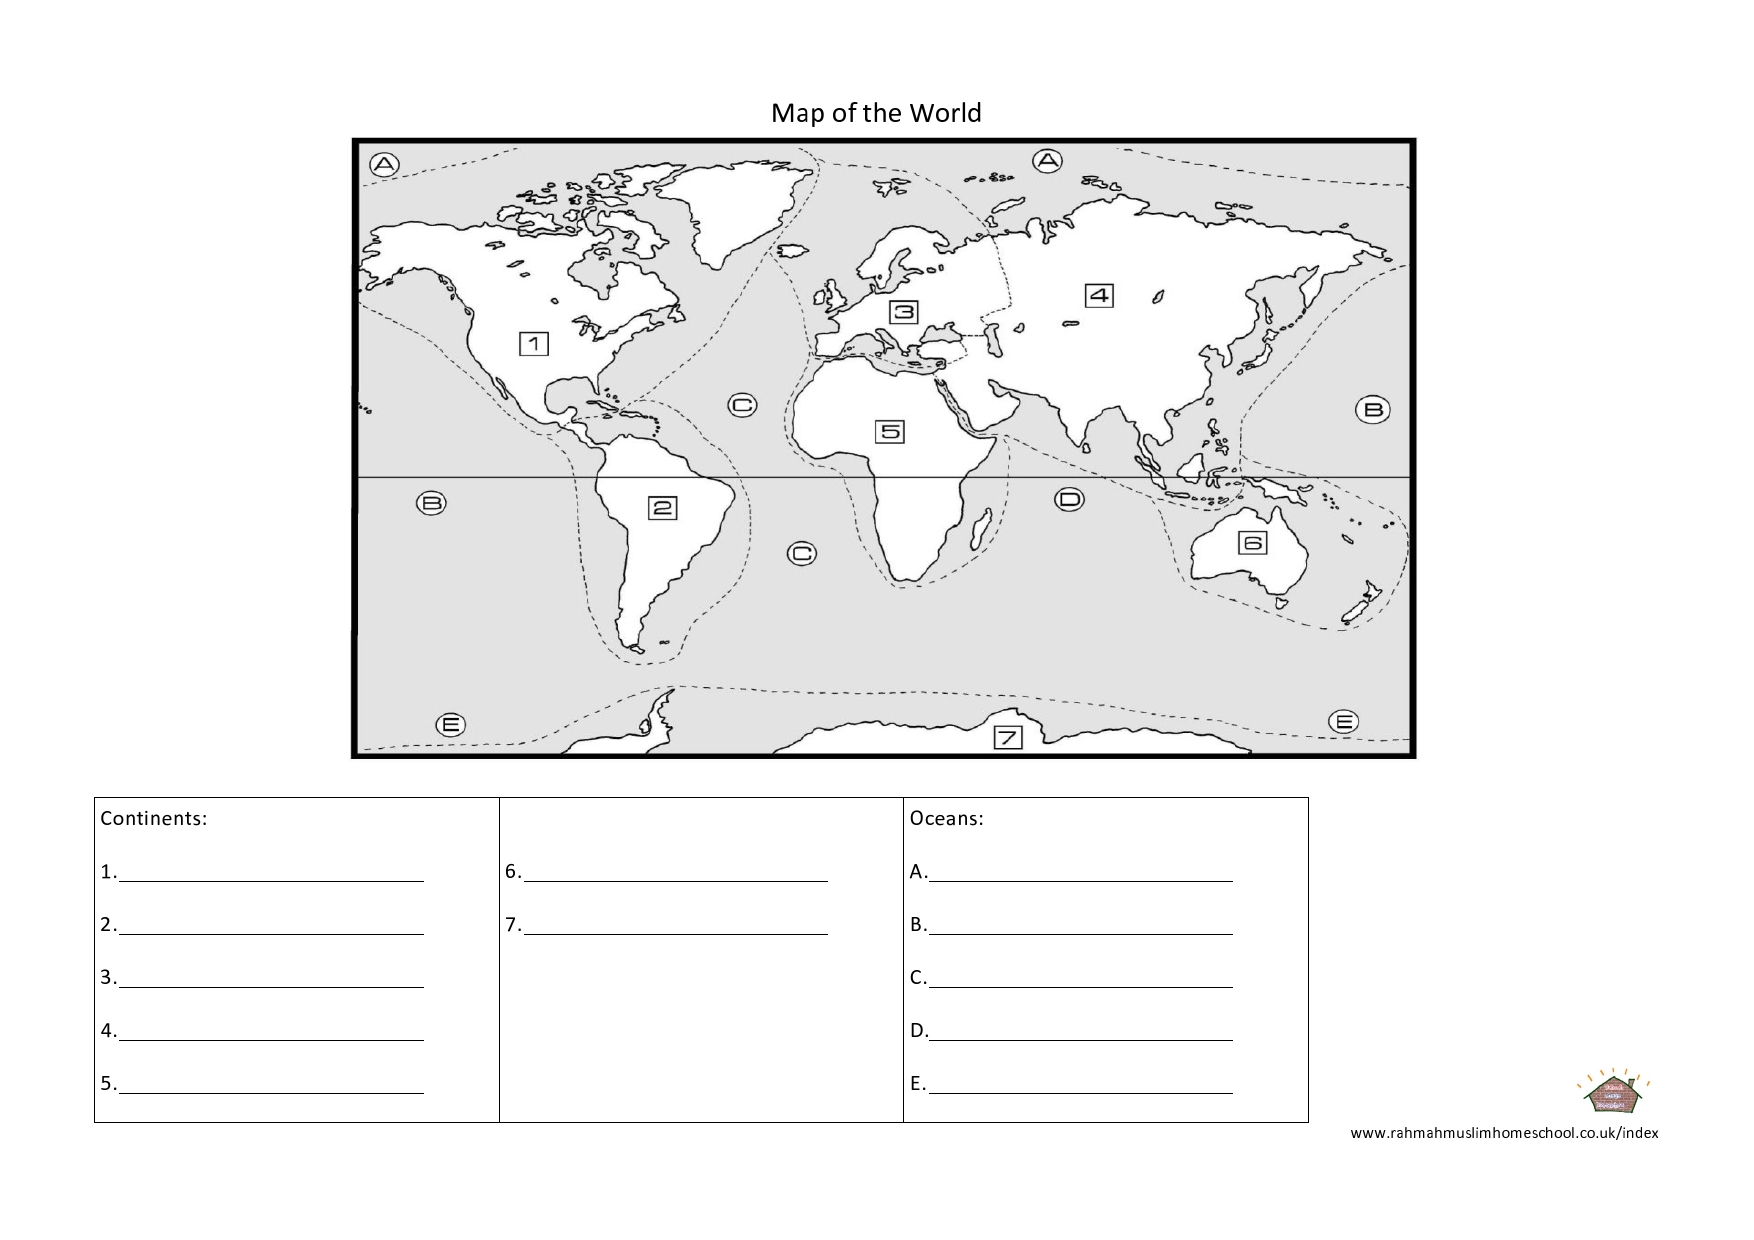 hight resolution of Geography: Continents and Oceans Worksheet   The Resources of Islamic  Homeschool in the UK